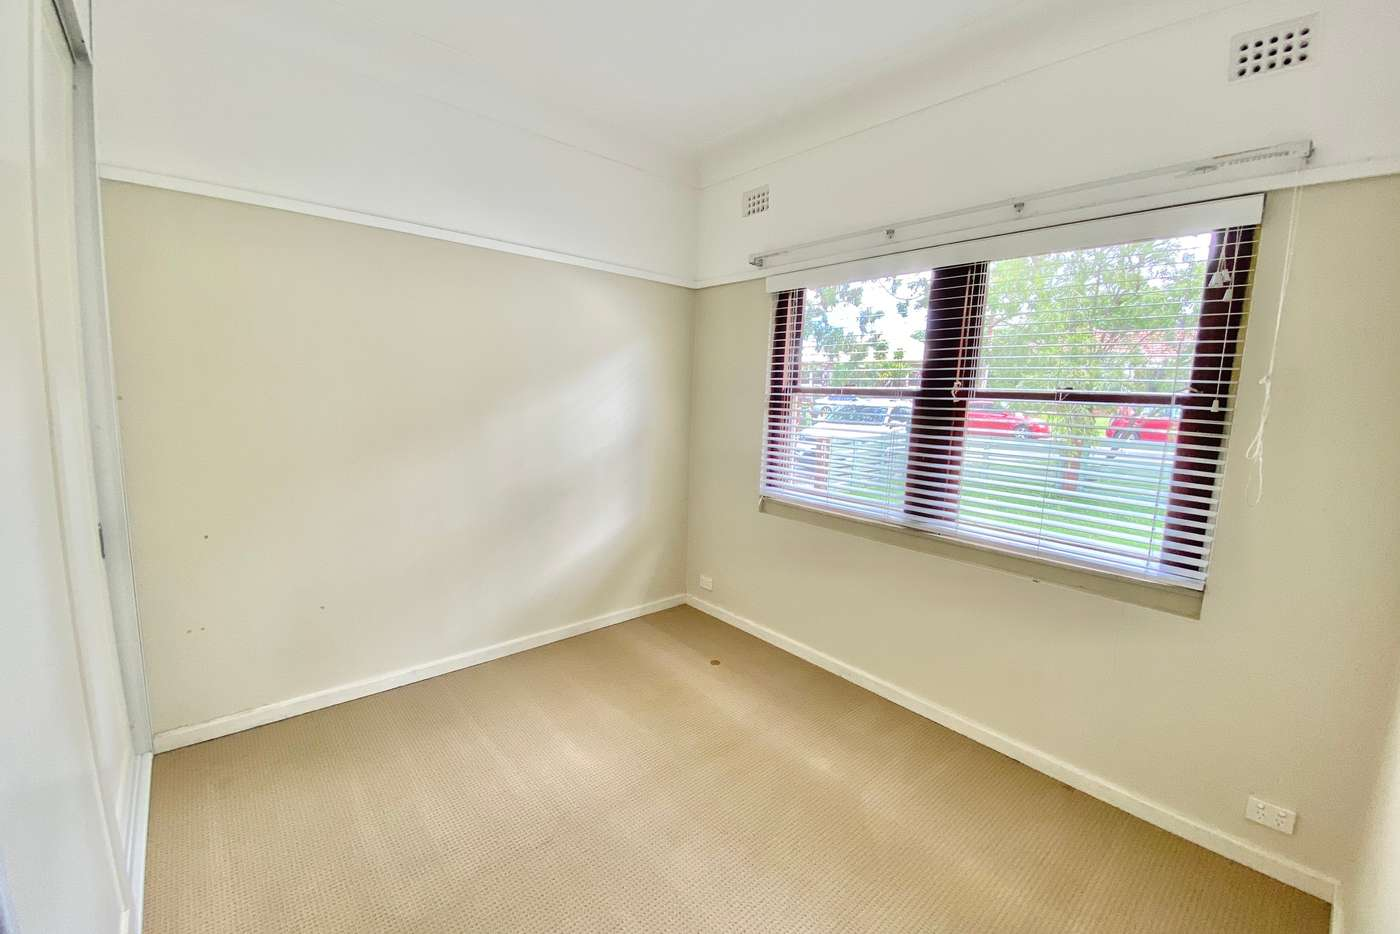 Sixth view of Homely house listing, 14 Hinkler Avenue, Caringbah NSW 2229